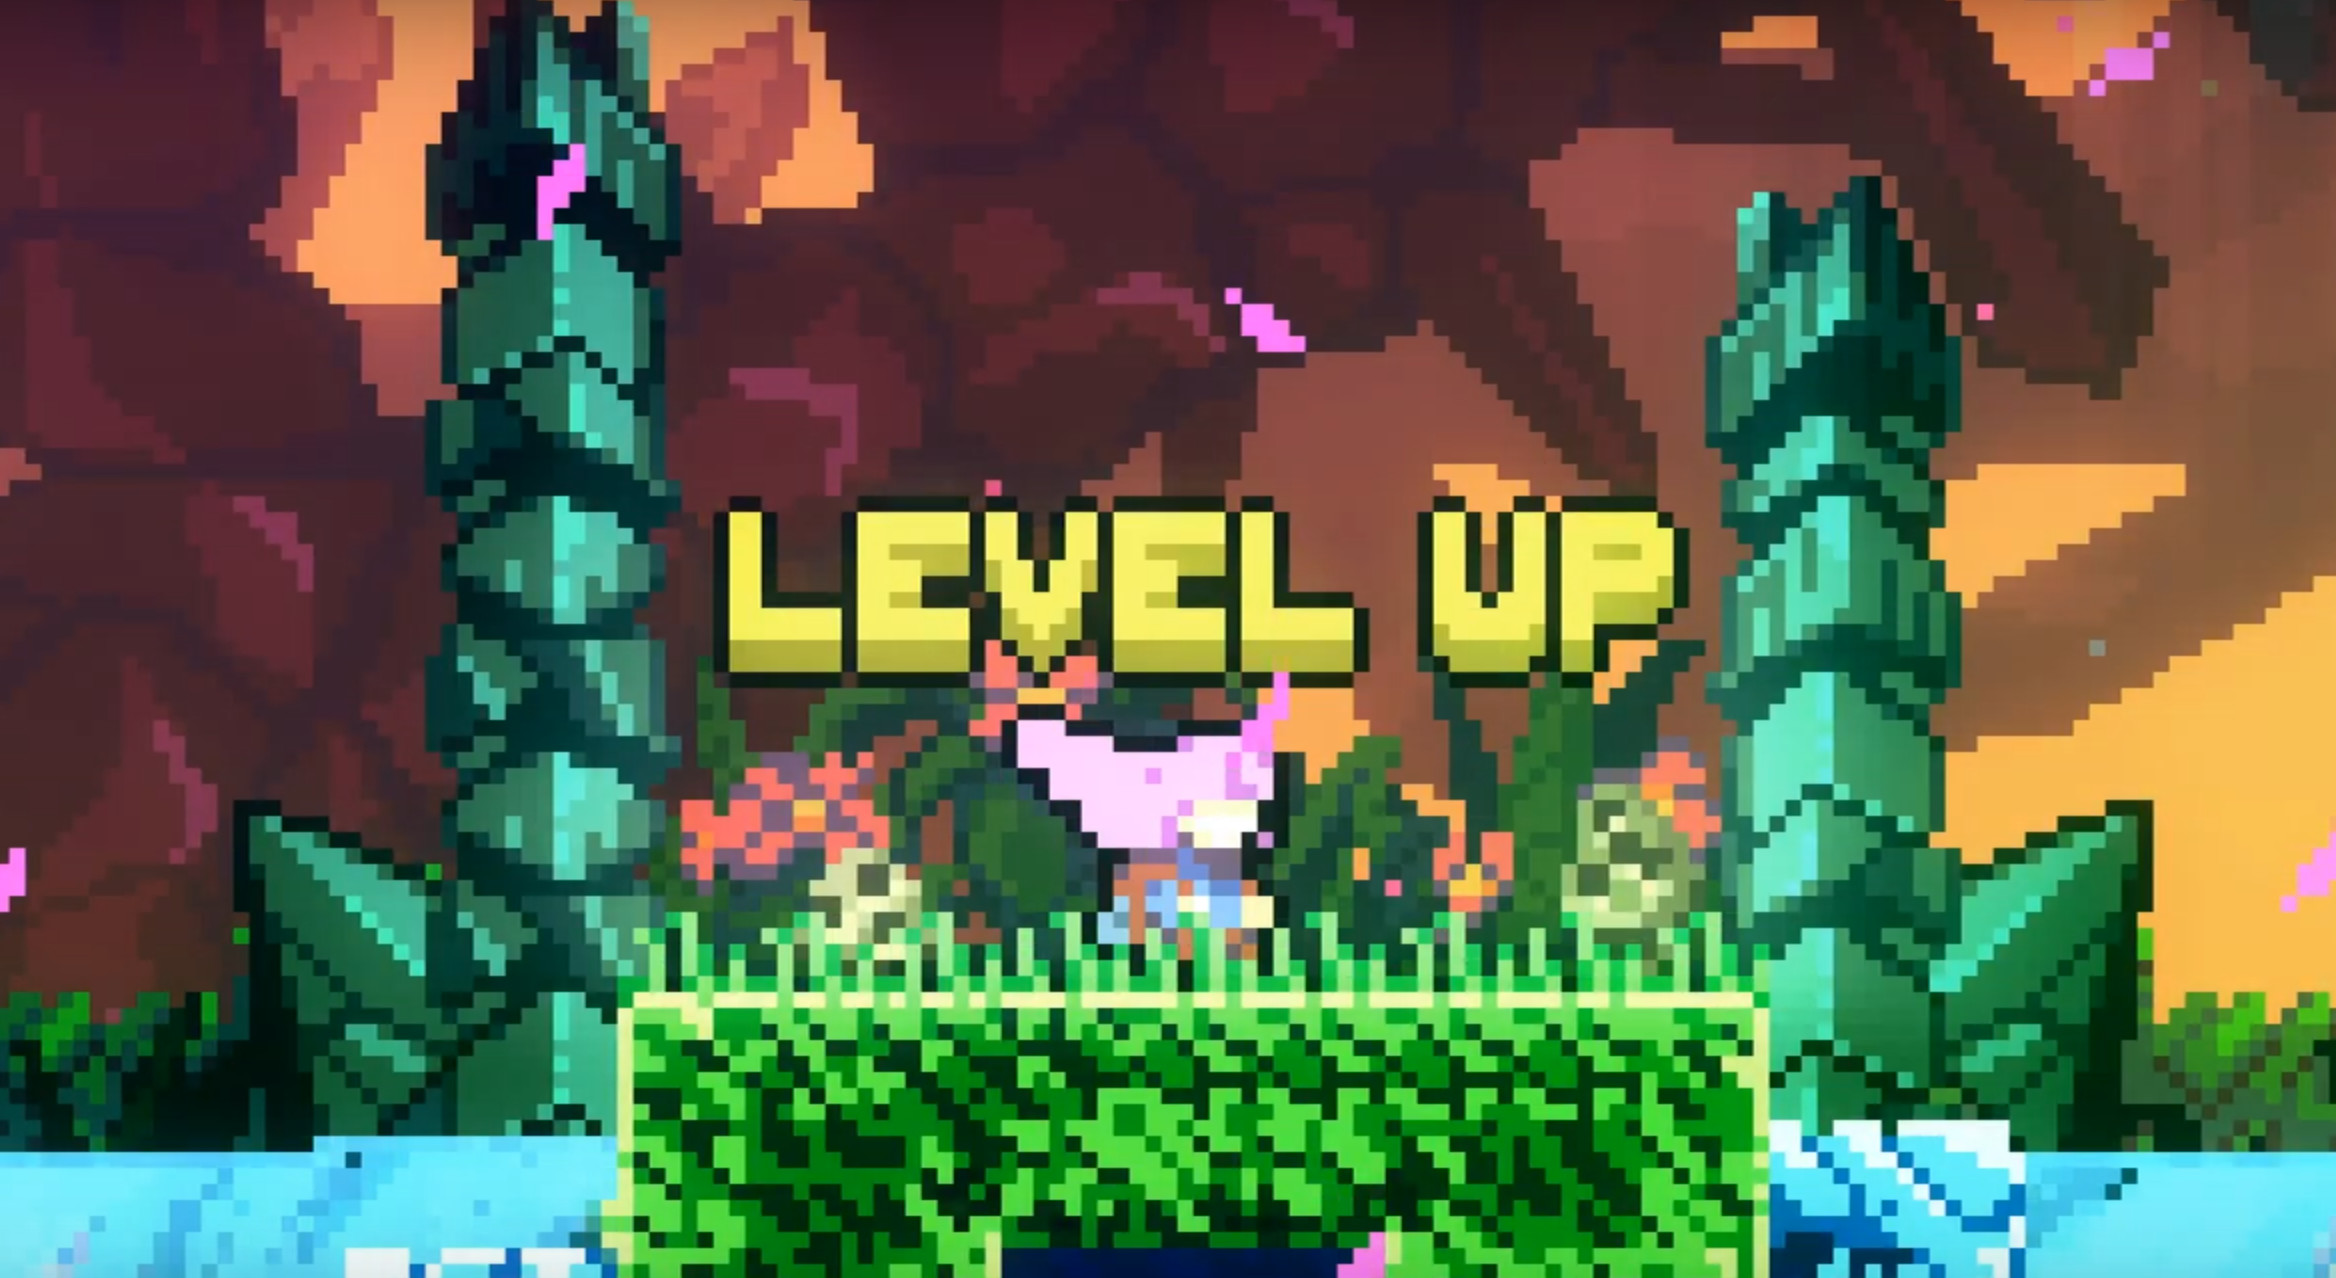 Celeste: Integration des Schattenanteils führt zu Level-Up (Quelle: eigener Screenshot)